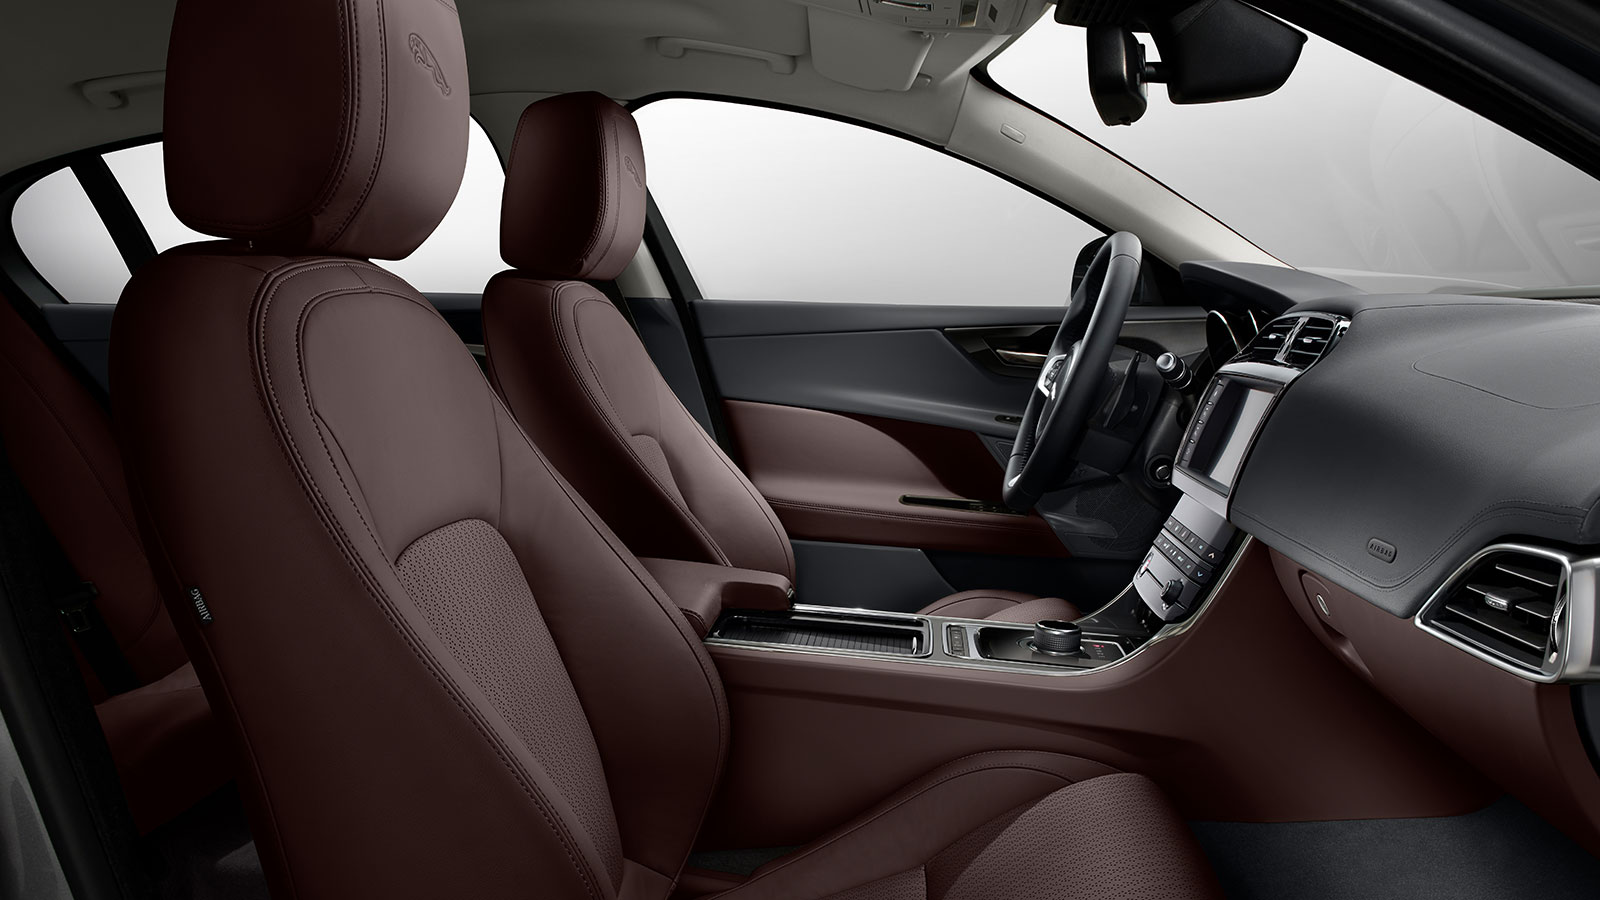 Interior view of Jaguar XE.